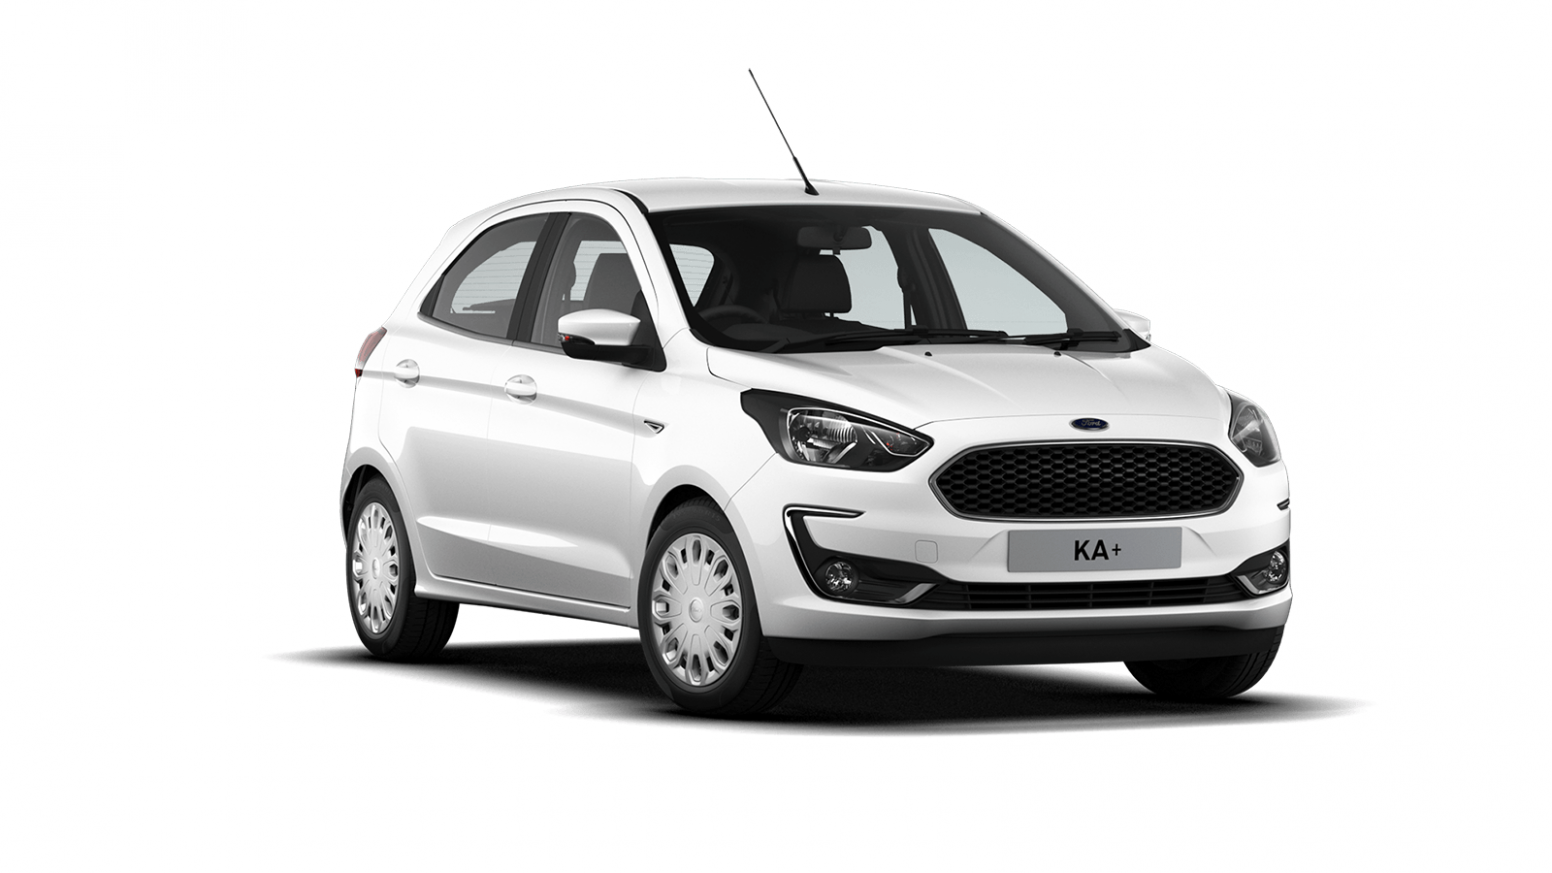 2020 Ford Ka New Review Ford Car Collection Small Cars